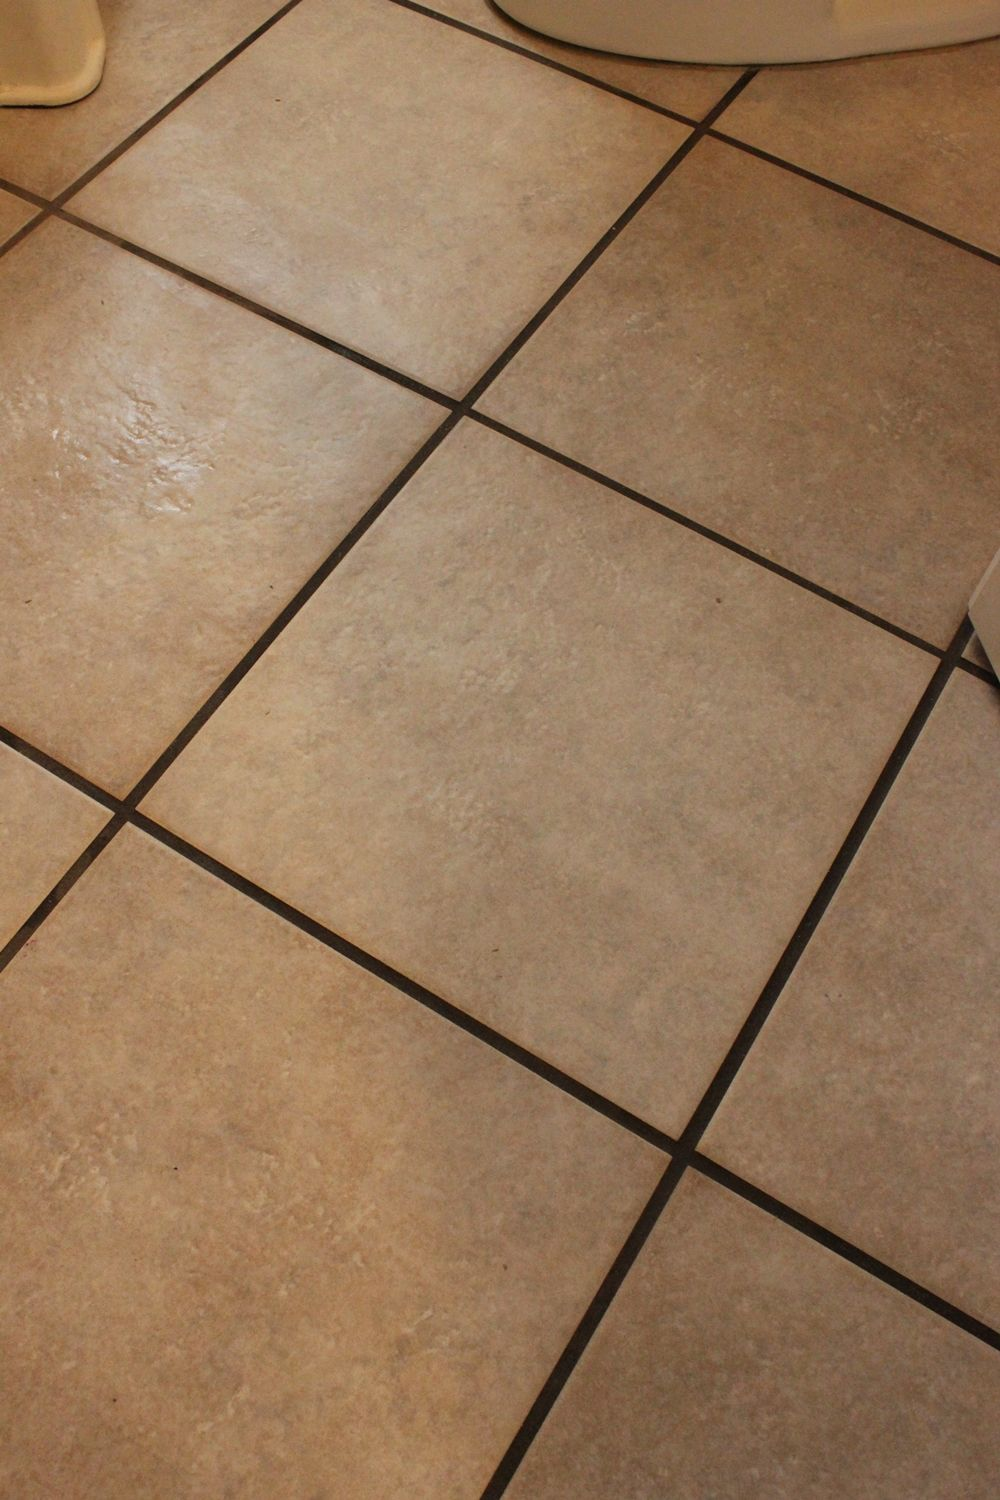 Natural tile or grout cleaner diy natural grout cleaner tile floor dailygadgetfo Choice Image